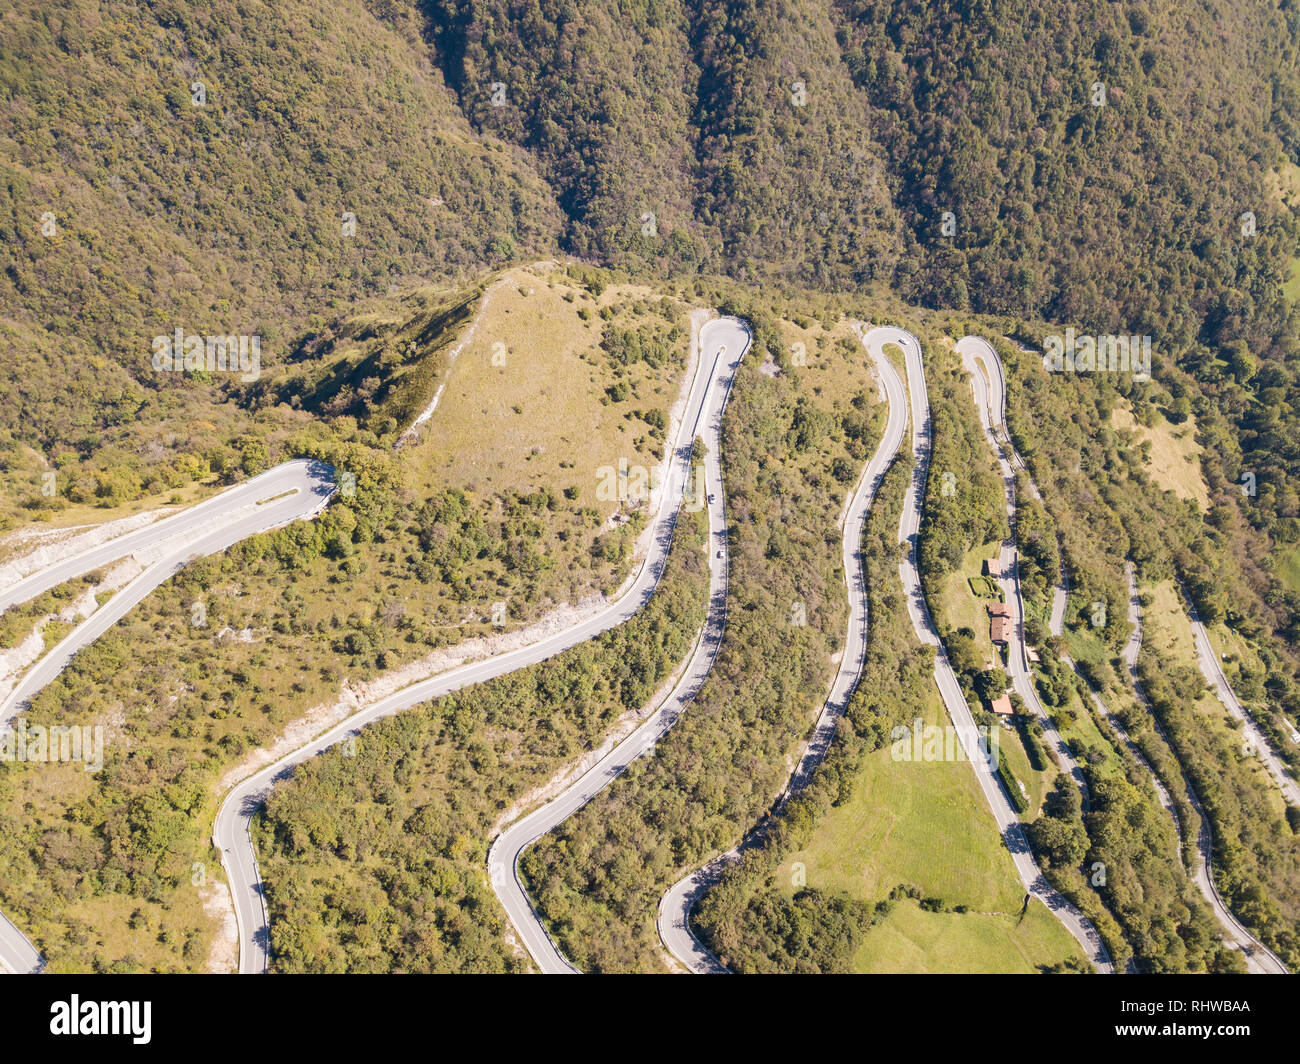 Drone Aerial View Of The Mountain Road In Italy From The Village Of Nembro To Selvino Amazing Aerial View Of The Mountain Bends Creating Beautiful Sh Stock Photo Alamy